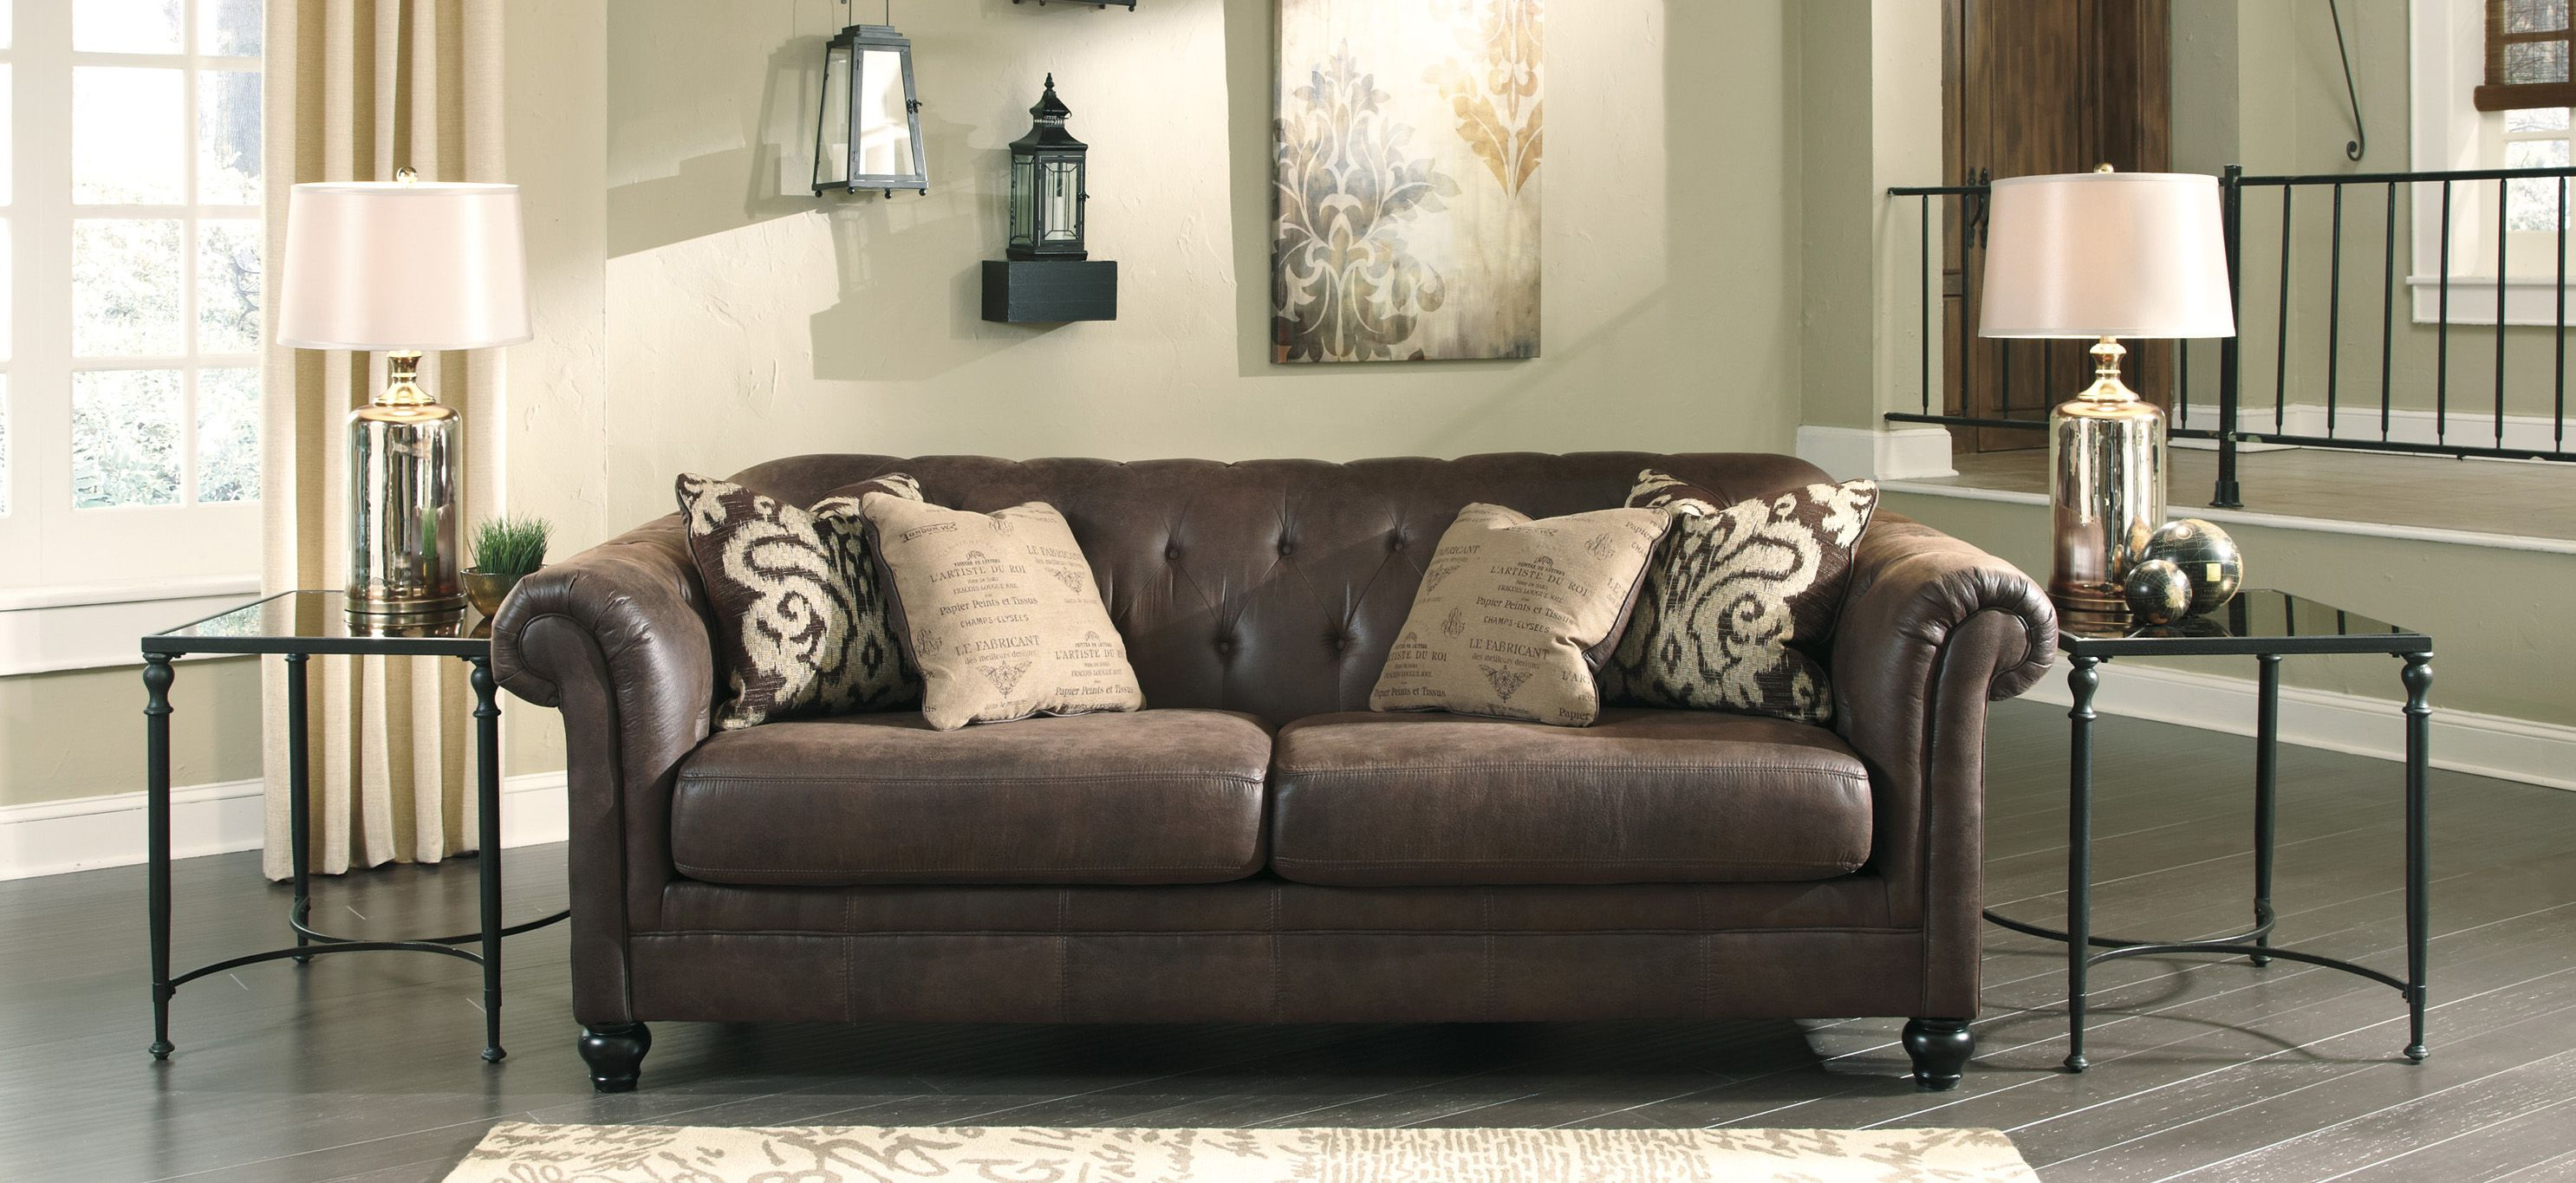 Why Buying Furniture During The Summer Is THE Best Time rva